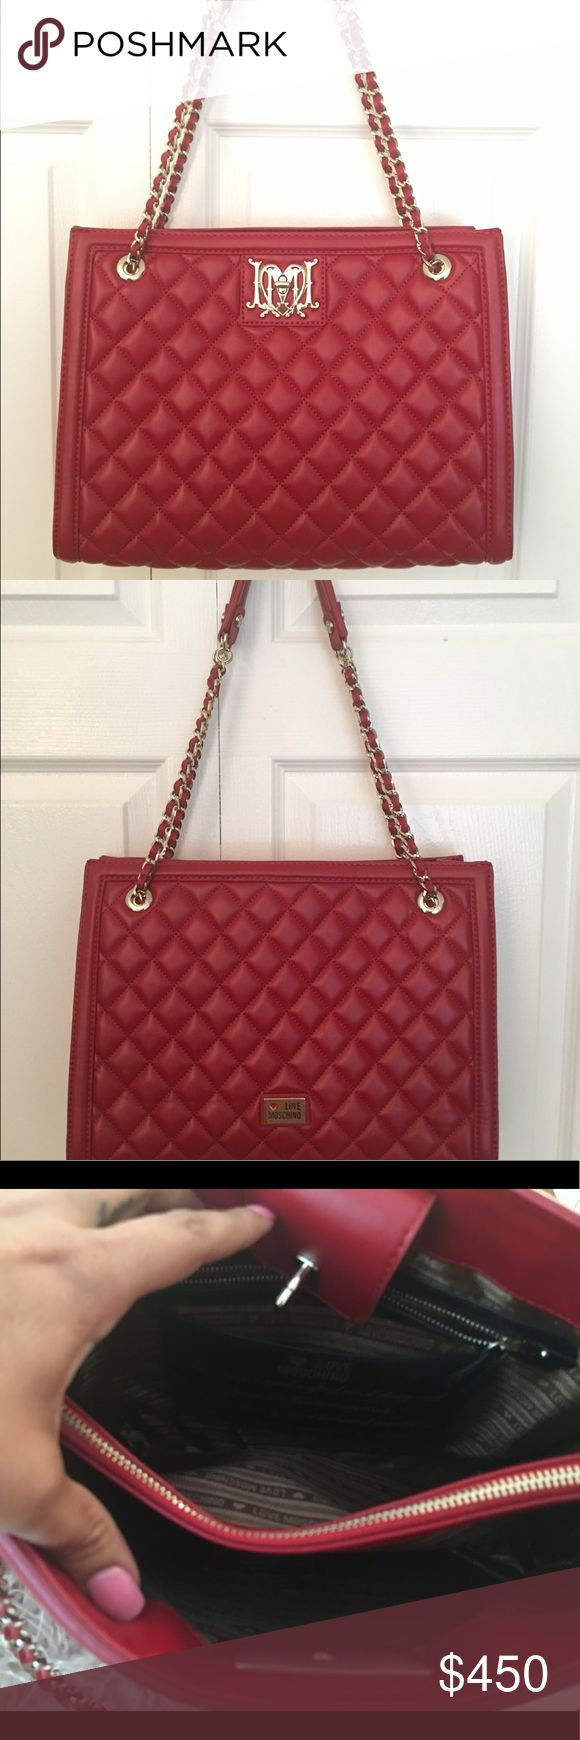 Moschino Red Shoulder Bag Pre loved Moschino shoulder bag. In excellent condition clean inside with plenty of space. Moschino Bags Shoulder Bags